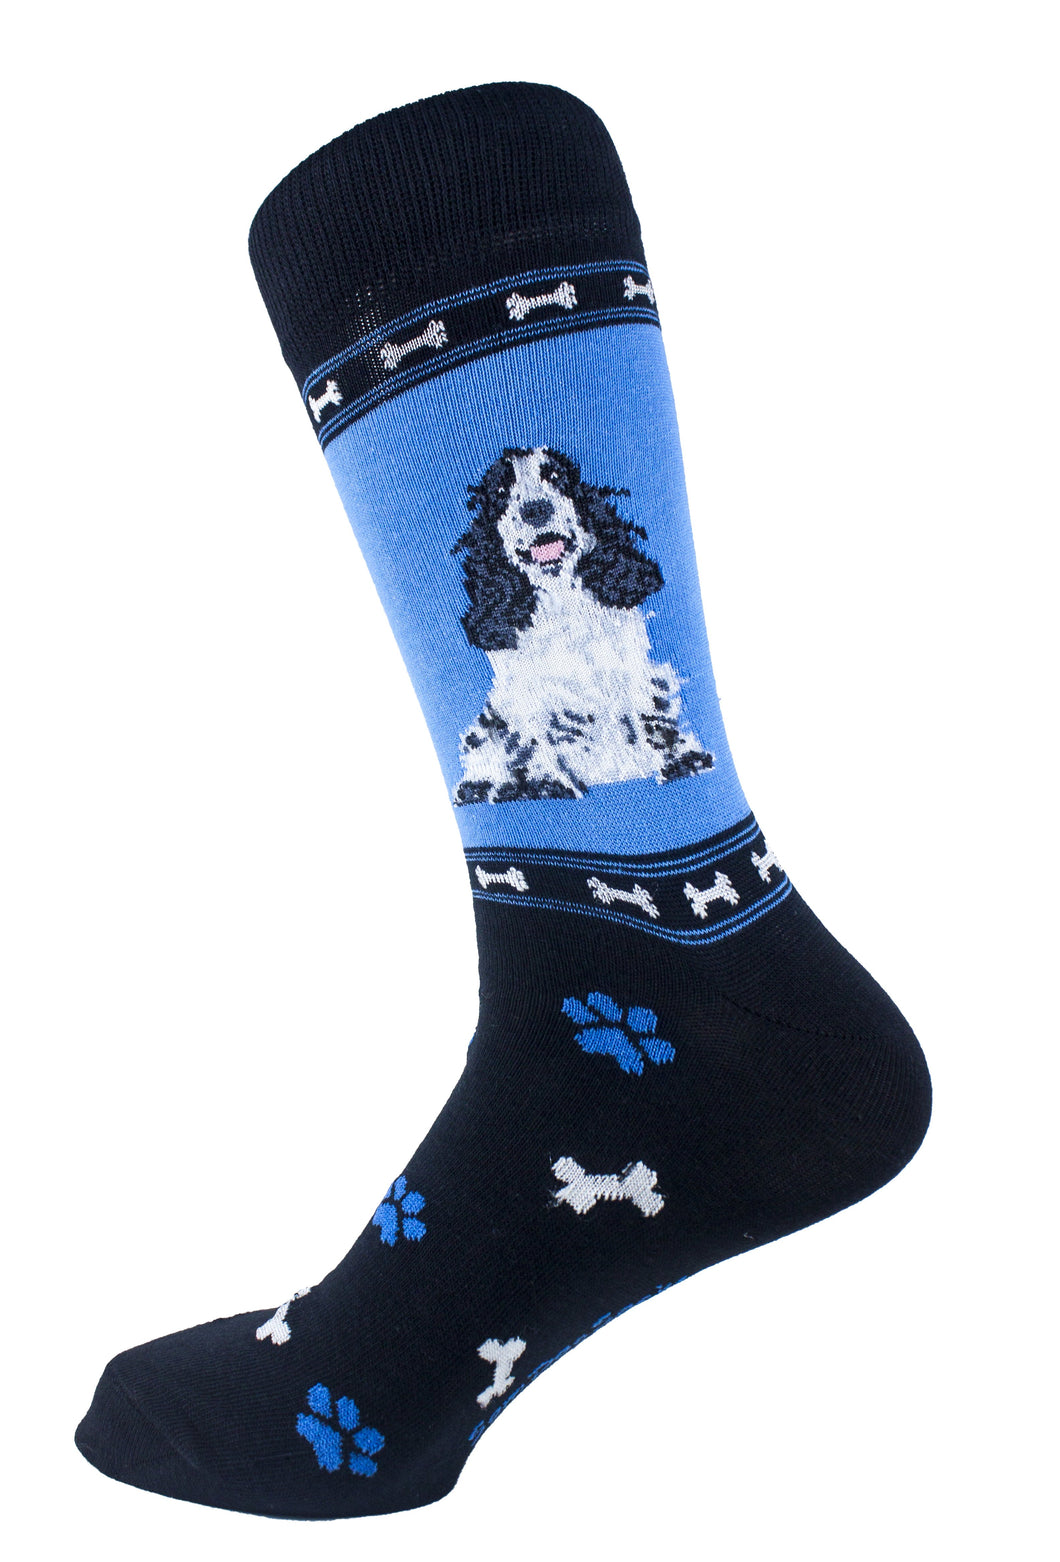 Cocker Spaniel Black & White Dog Socks Mens Signature